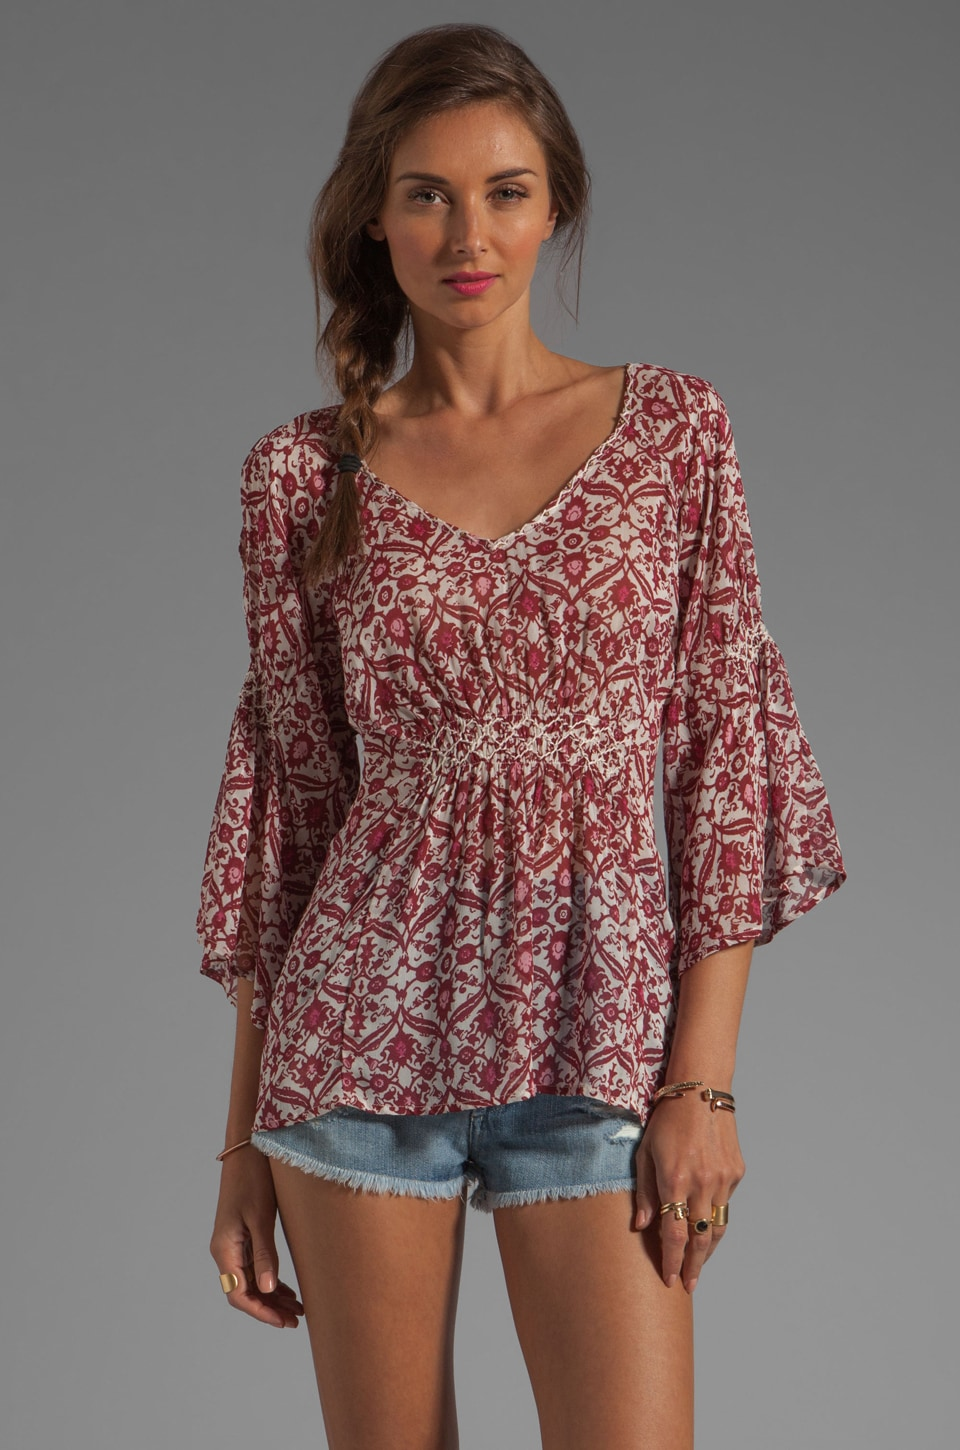 Sanctuary The Playa Blouse in Flea Market Print